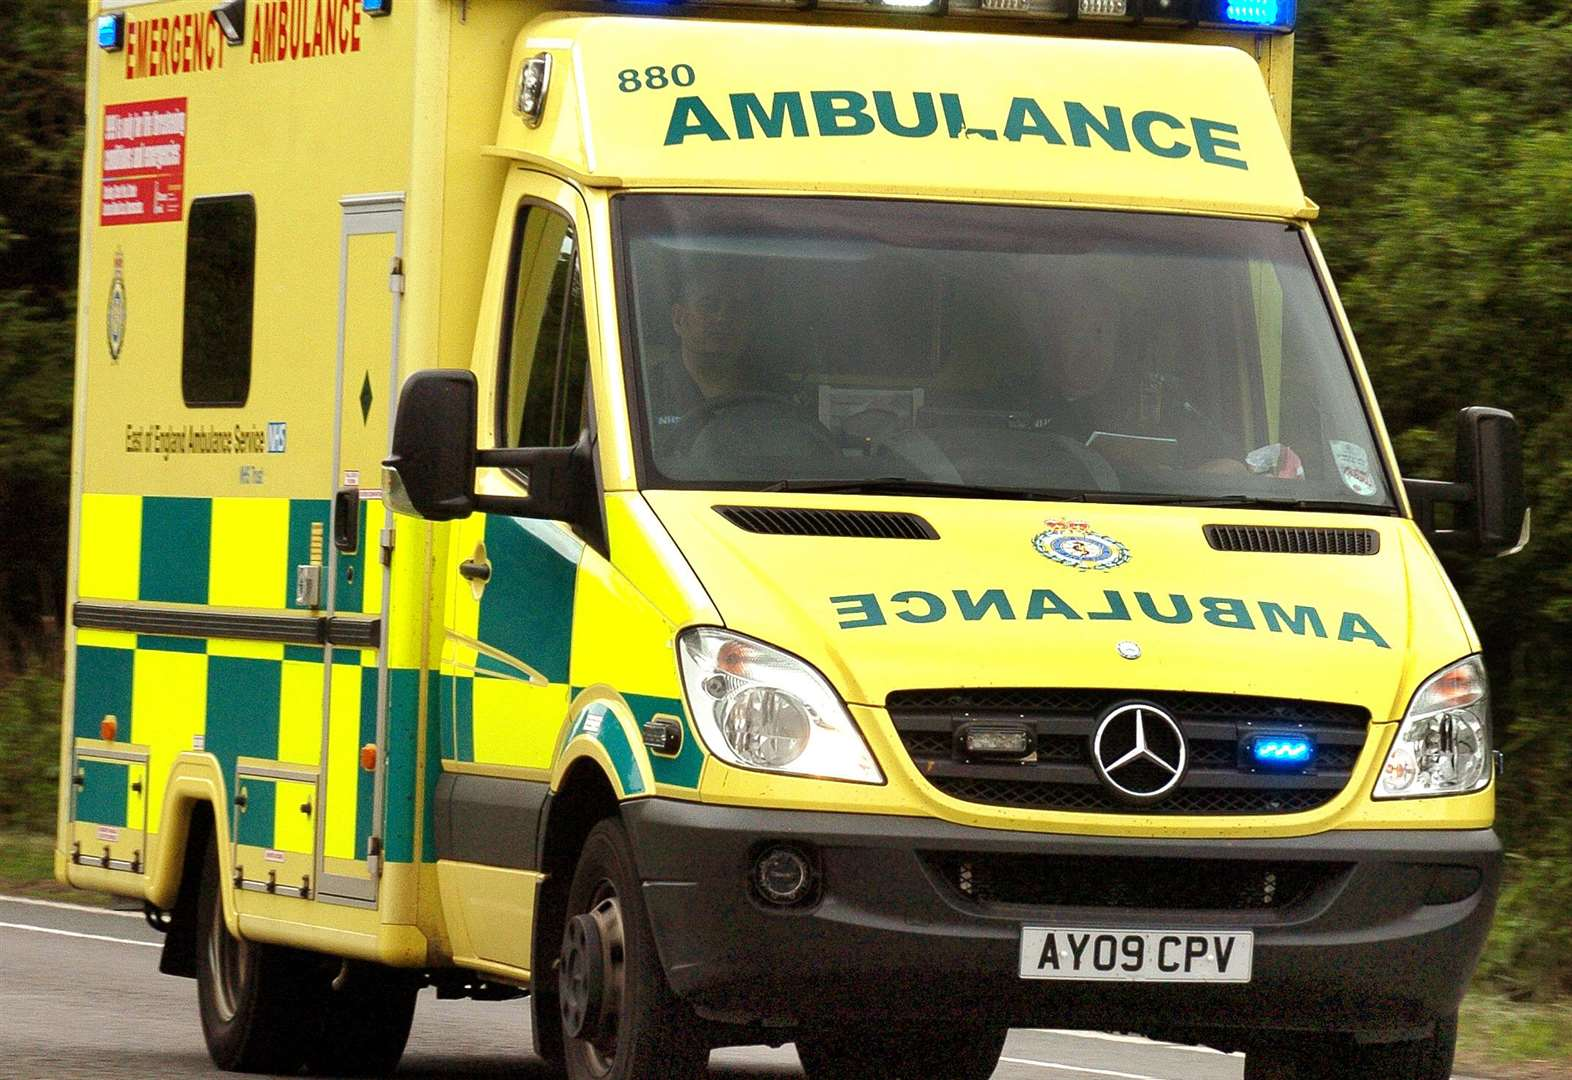 East of England Ambulance Service boss resigns